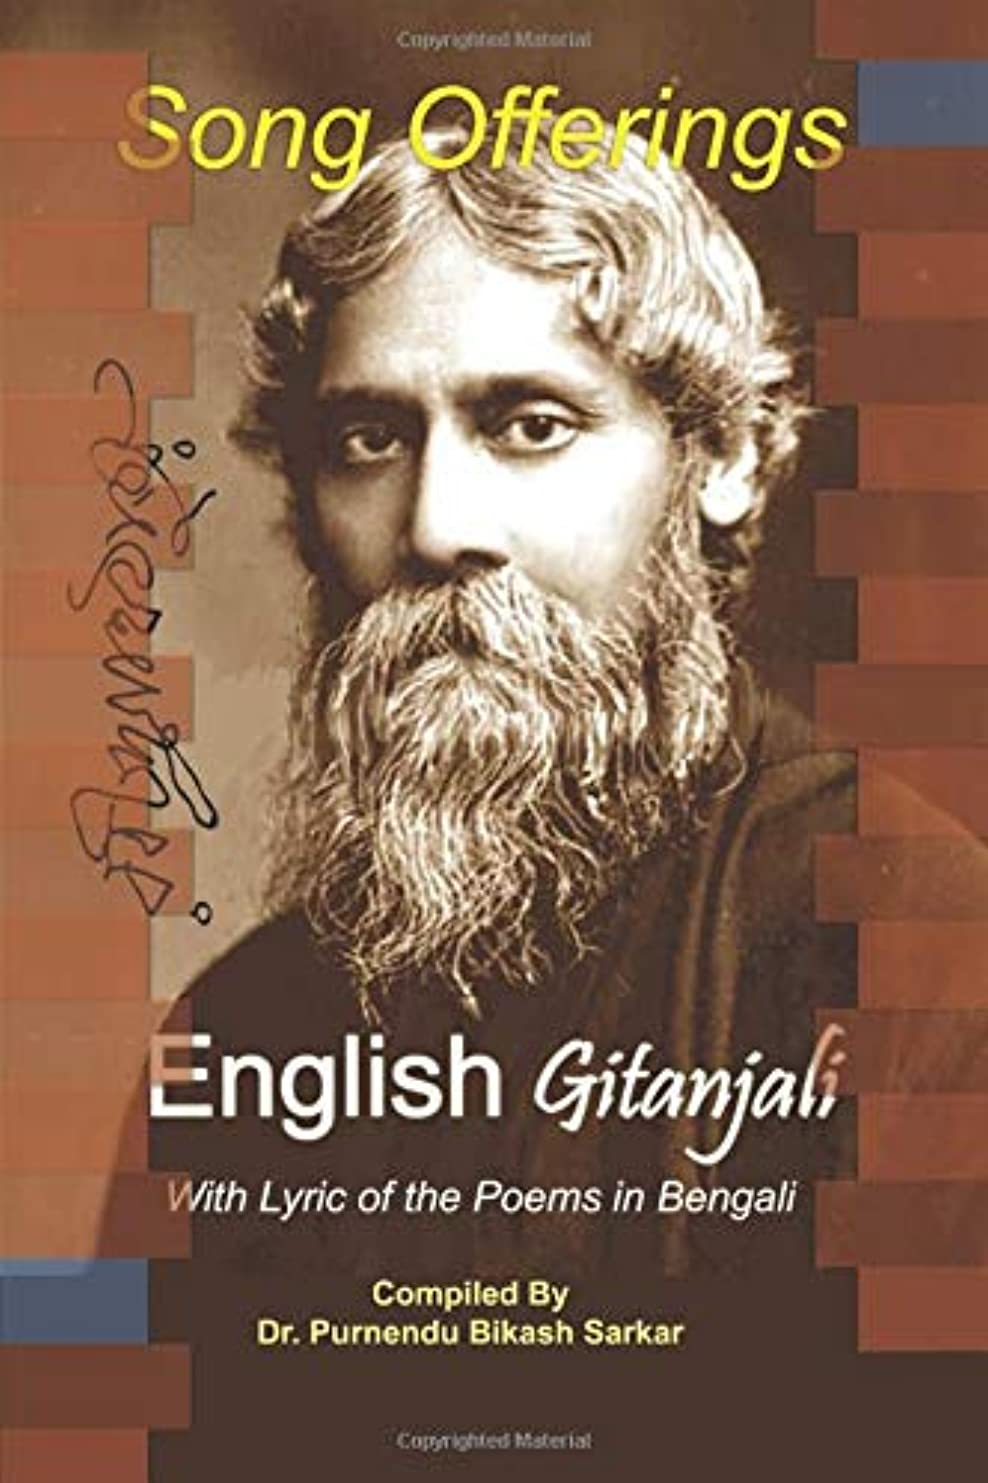 心のこもったライン土器Song Offerings English Gitanjali: With Lyrics of the Poems in Bengali